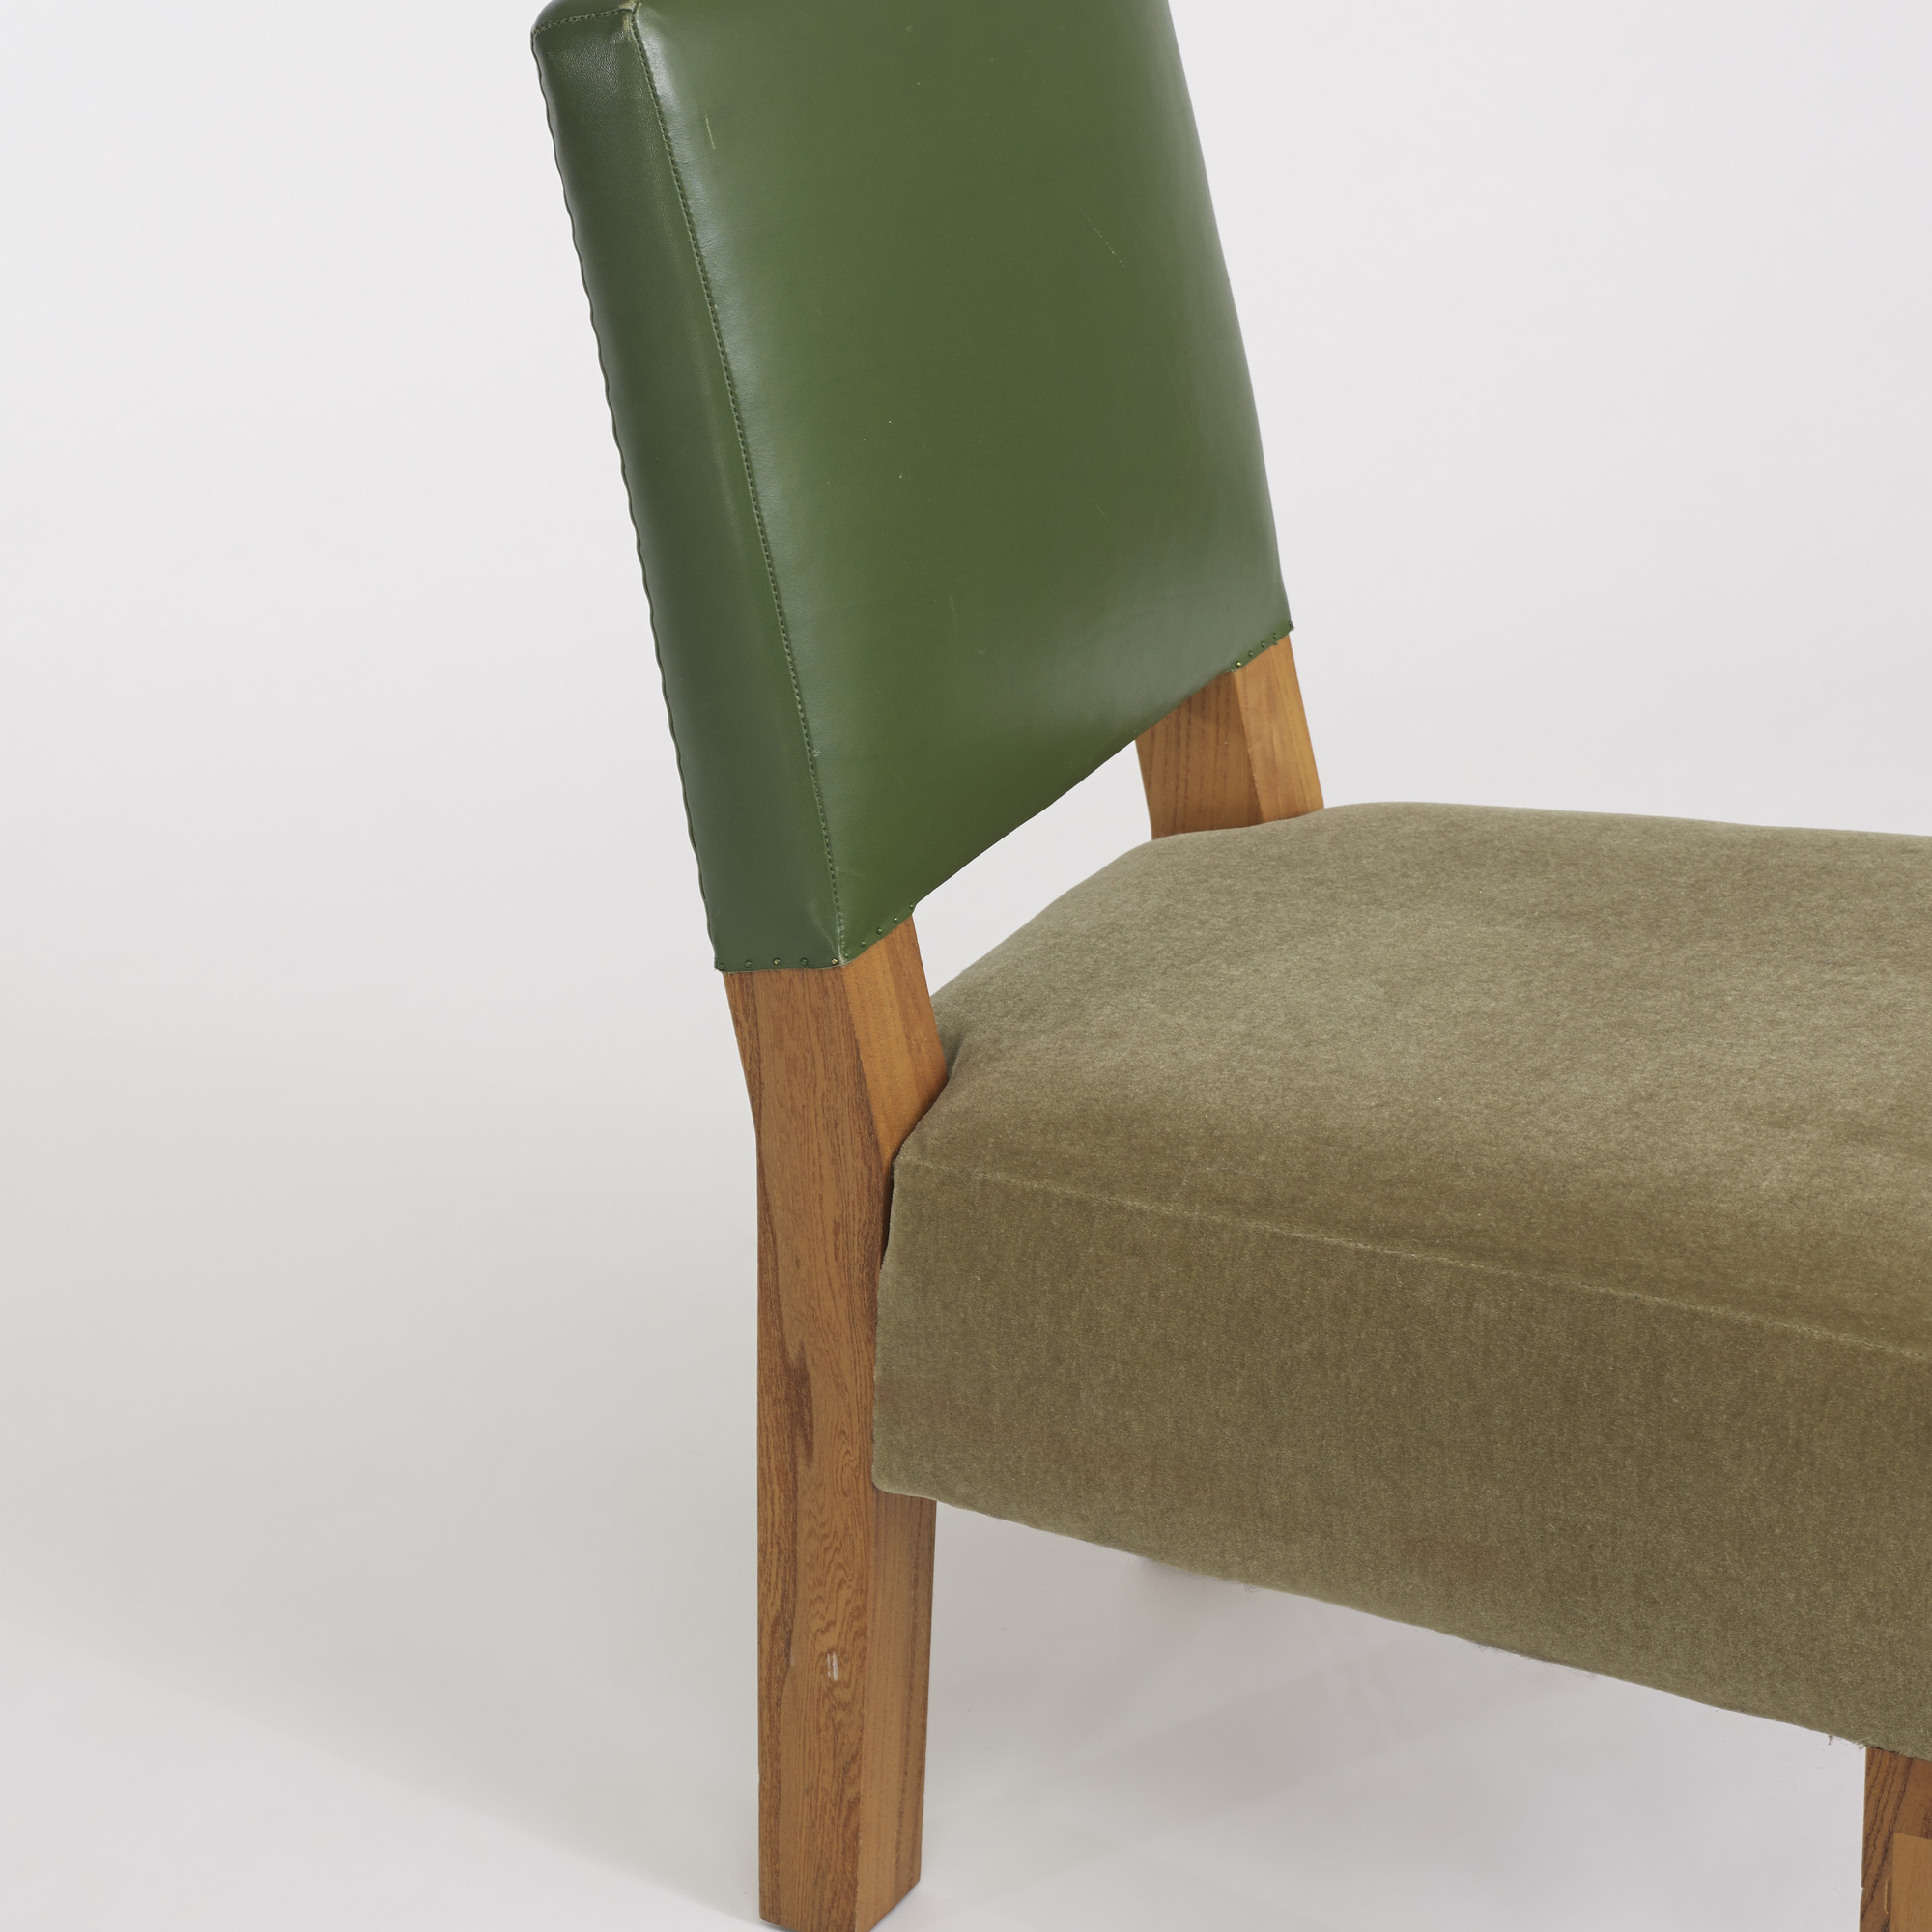 290: Roy McMakin / collection of three chairs for the Young residence, Chicago (3 of 4)